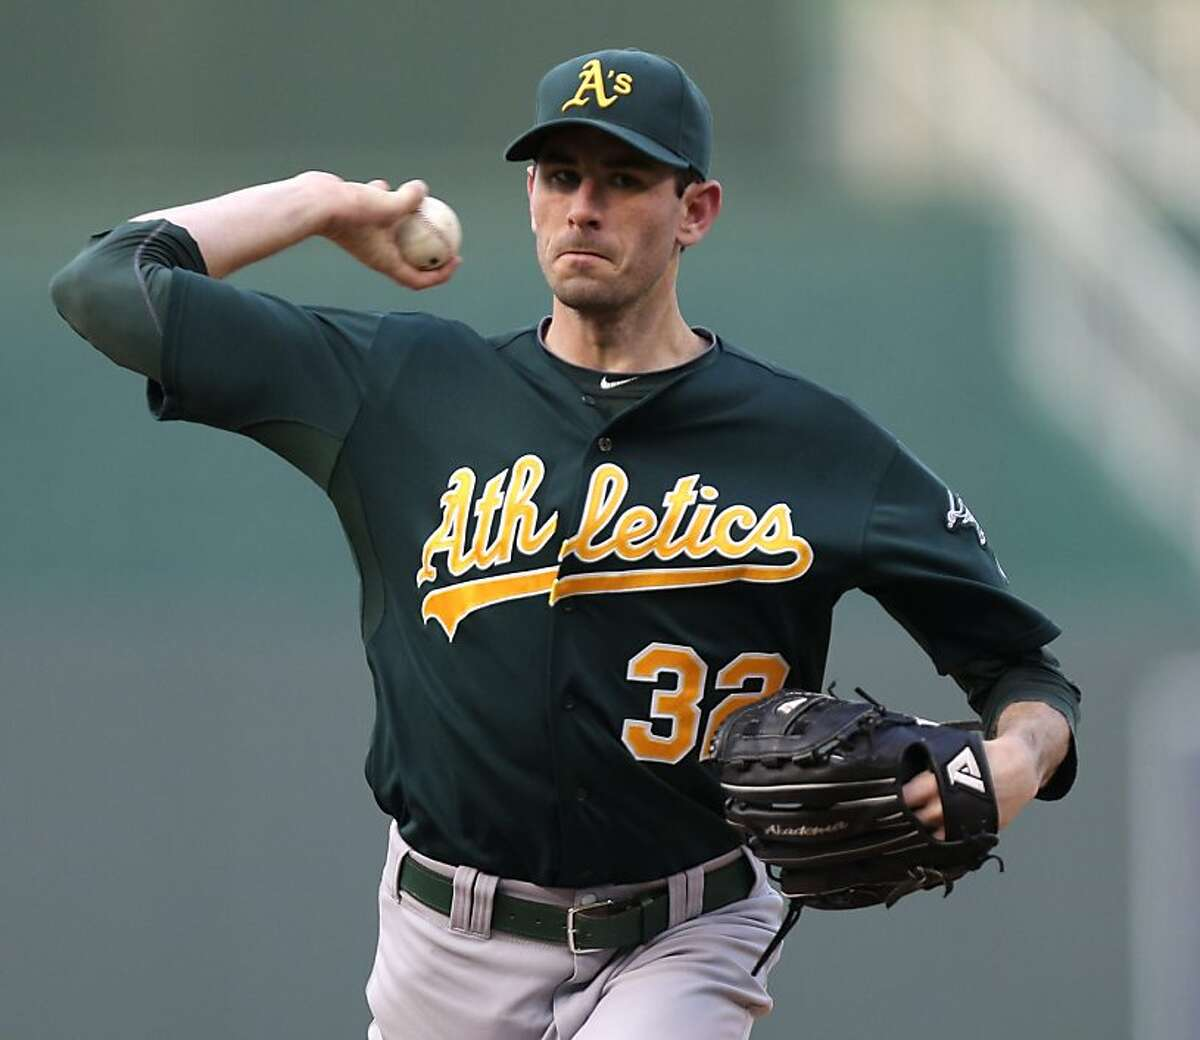 KANSAS CITY, MO - AUGUST 15: Brandon McCarthy #32 of the Oakland Athletics warms up during a game against the Kansas City Royals in the first inning on August 15, 2012 at Kauffman Stadium in Kansas City, Missouri. (Photo by Ed Zurga/Getty Images)